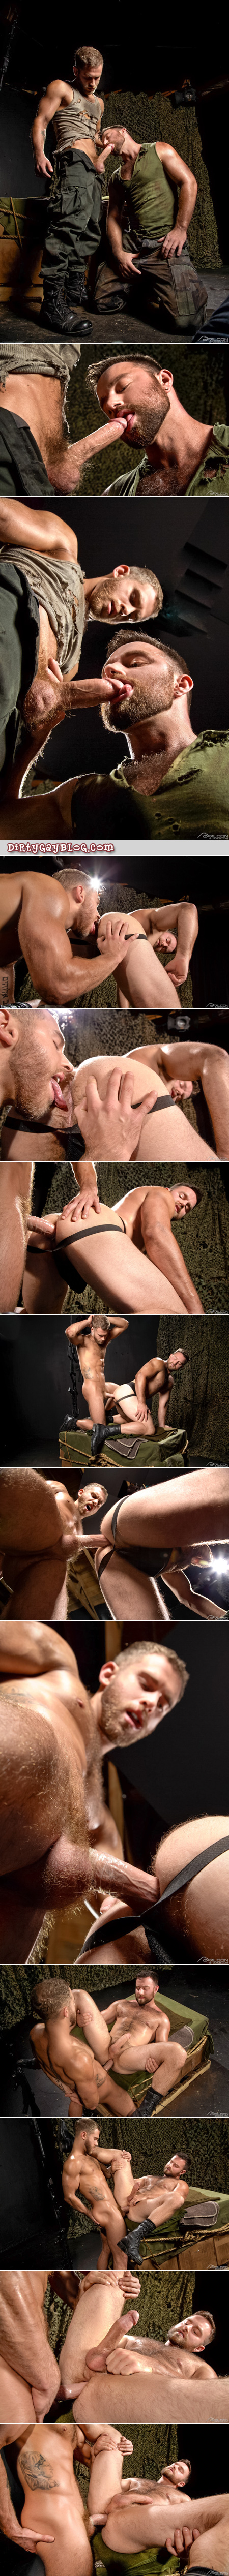 Muscular, hairy military man fucks his beefy sergeant in their black leather boots and jockstraps.